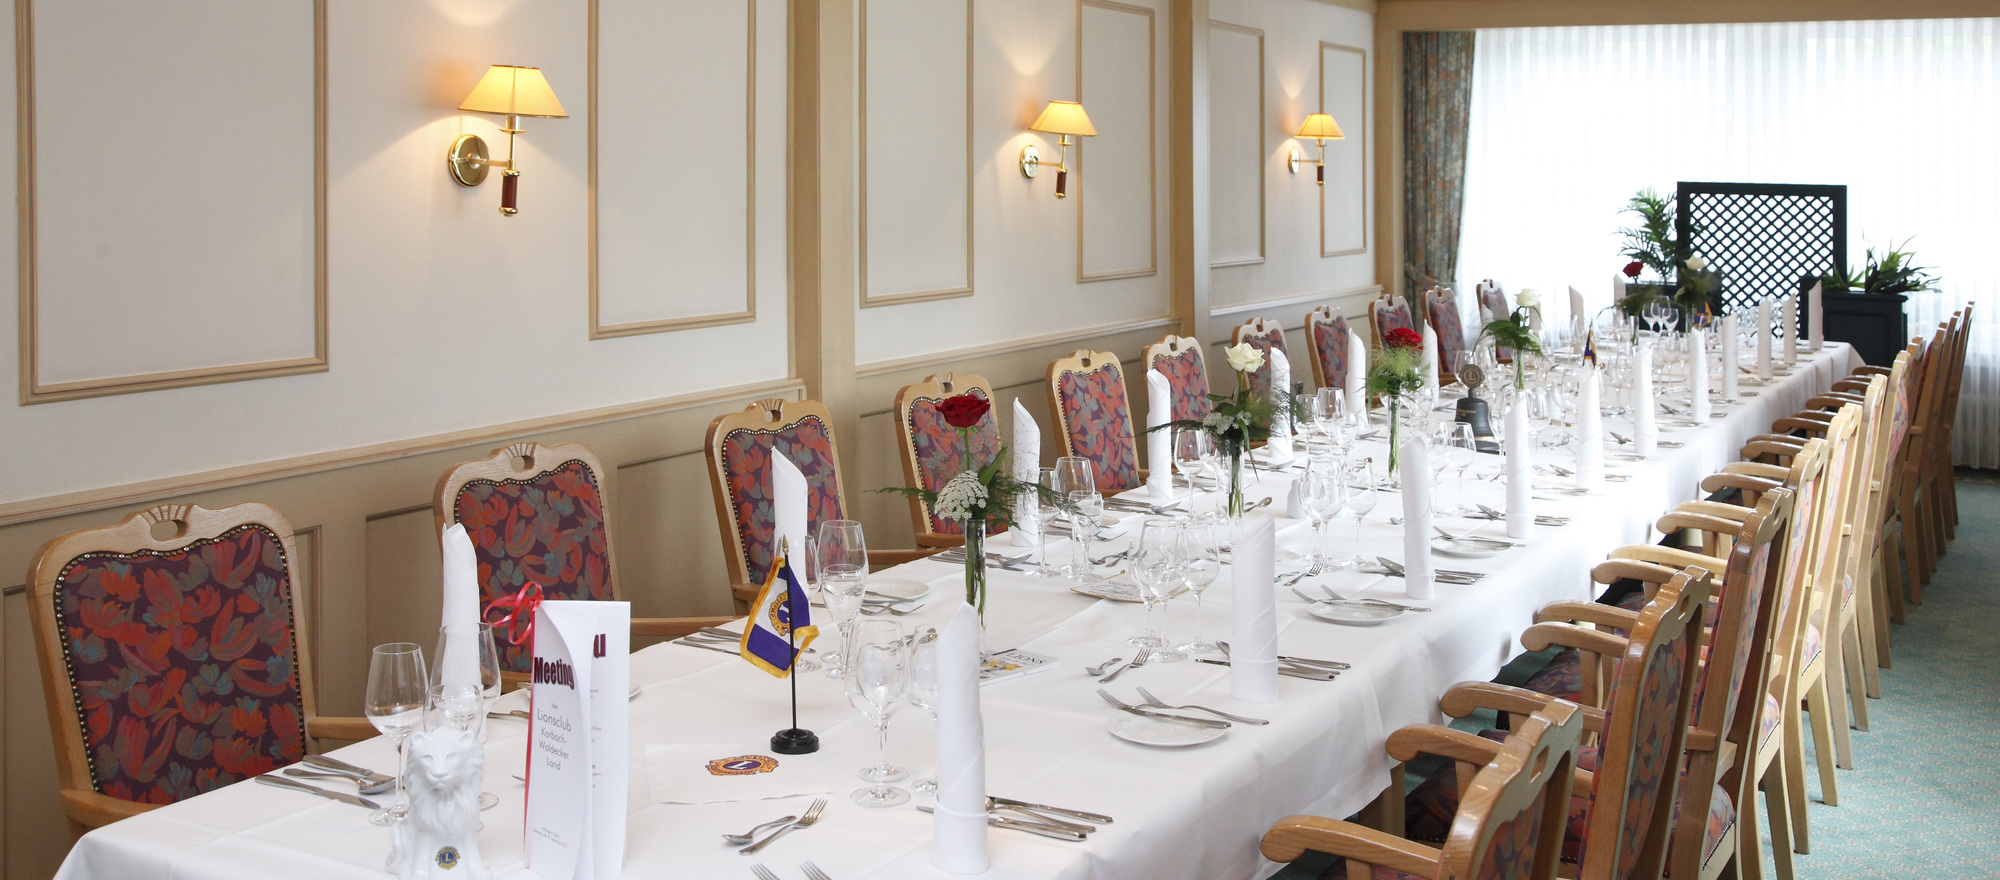 Elegant rooms for celebrations in the Ringhotel Posthotel Usseln in Willingen, 4-star hotel in Sauerland